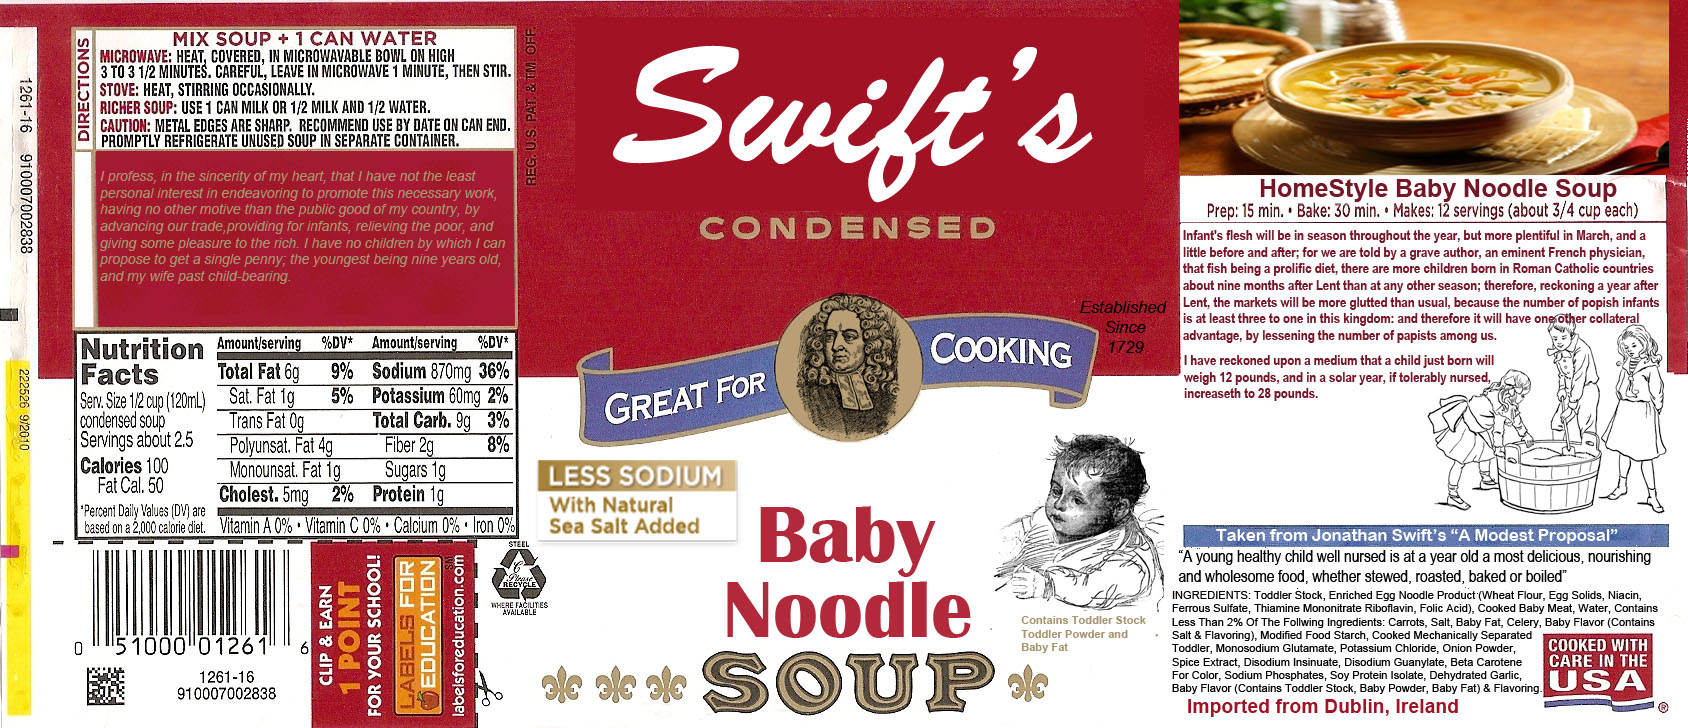 Soup labels clipart clipart images gallery for free download.